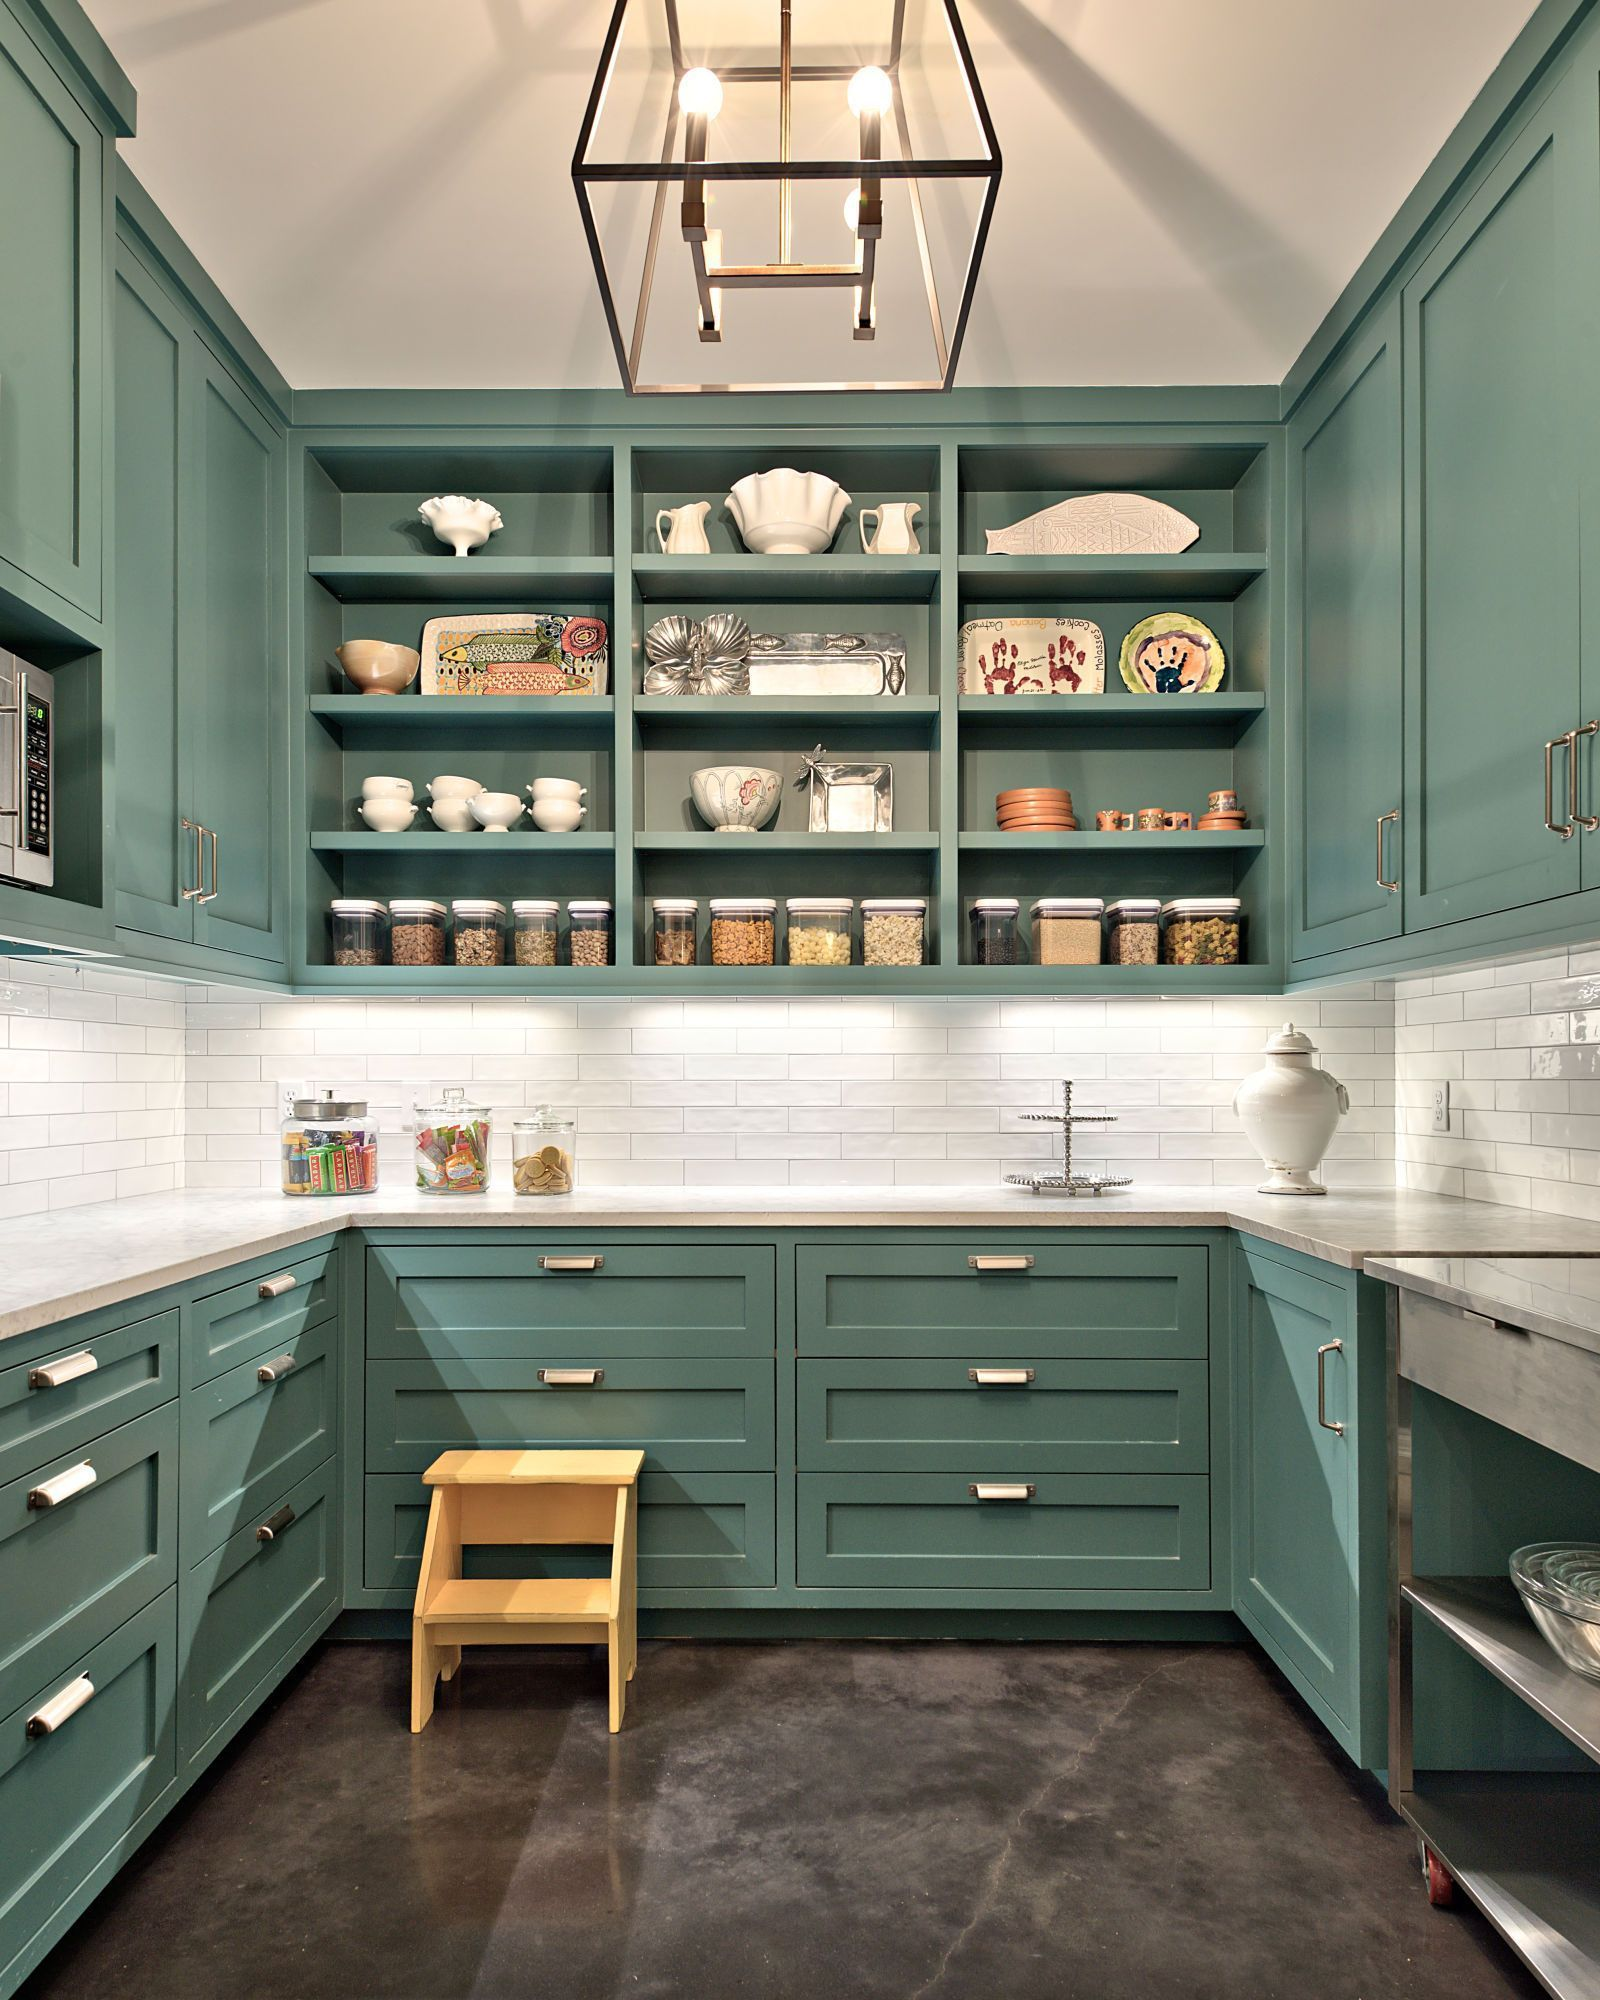 Awesome 49 Fancy Kitchen Pantry Designs Ideas More At Https Decoratrend Com 2018 11 24 49 Fancy Kitchen P Kitchen Pantry Design Pantry Design Fancy Kitchens